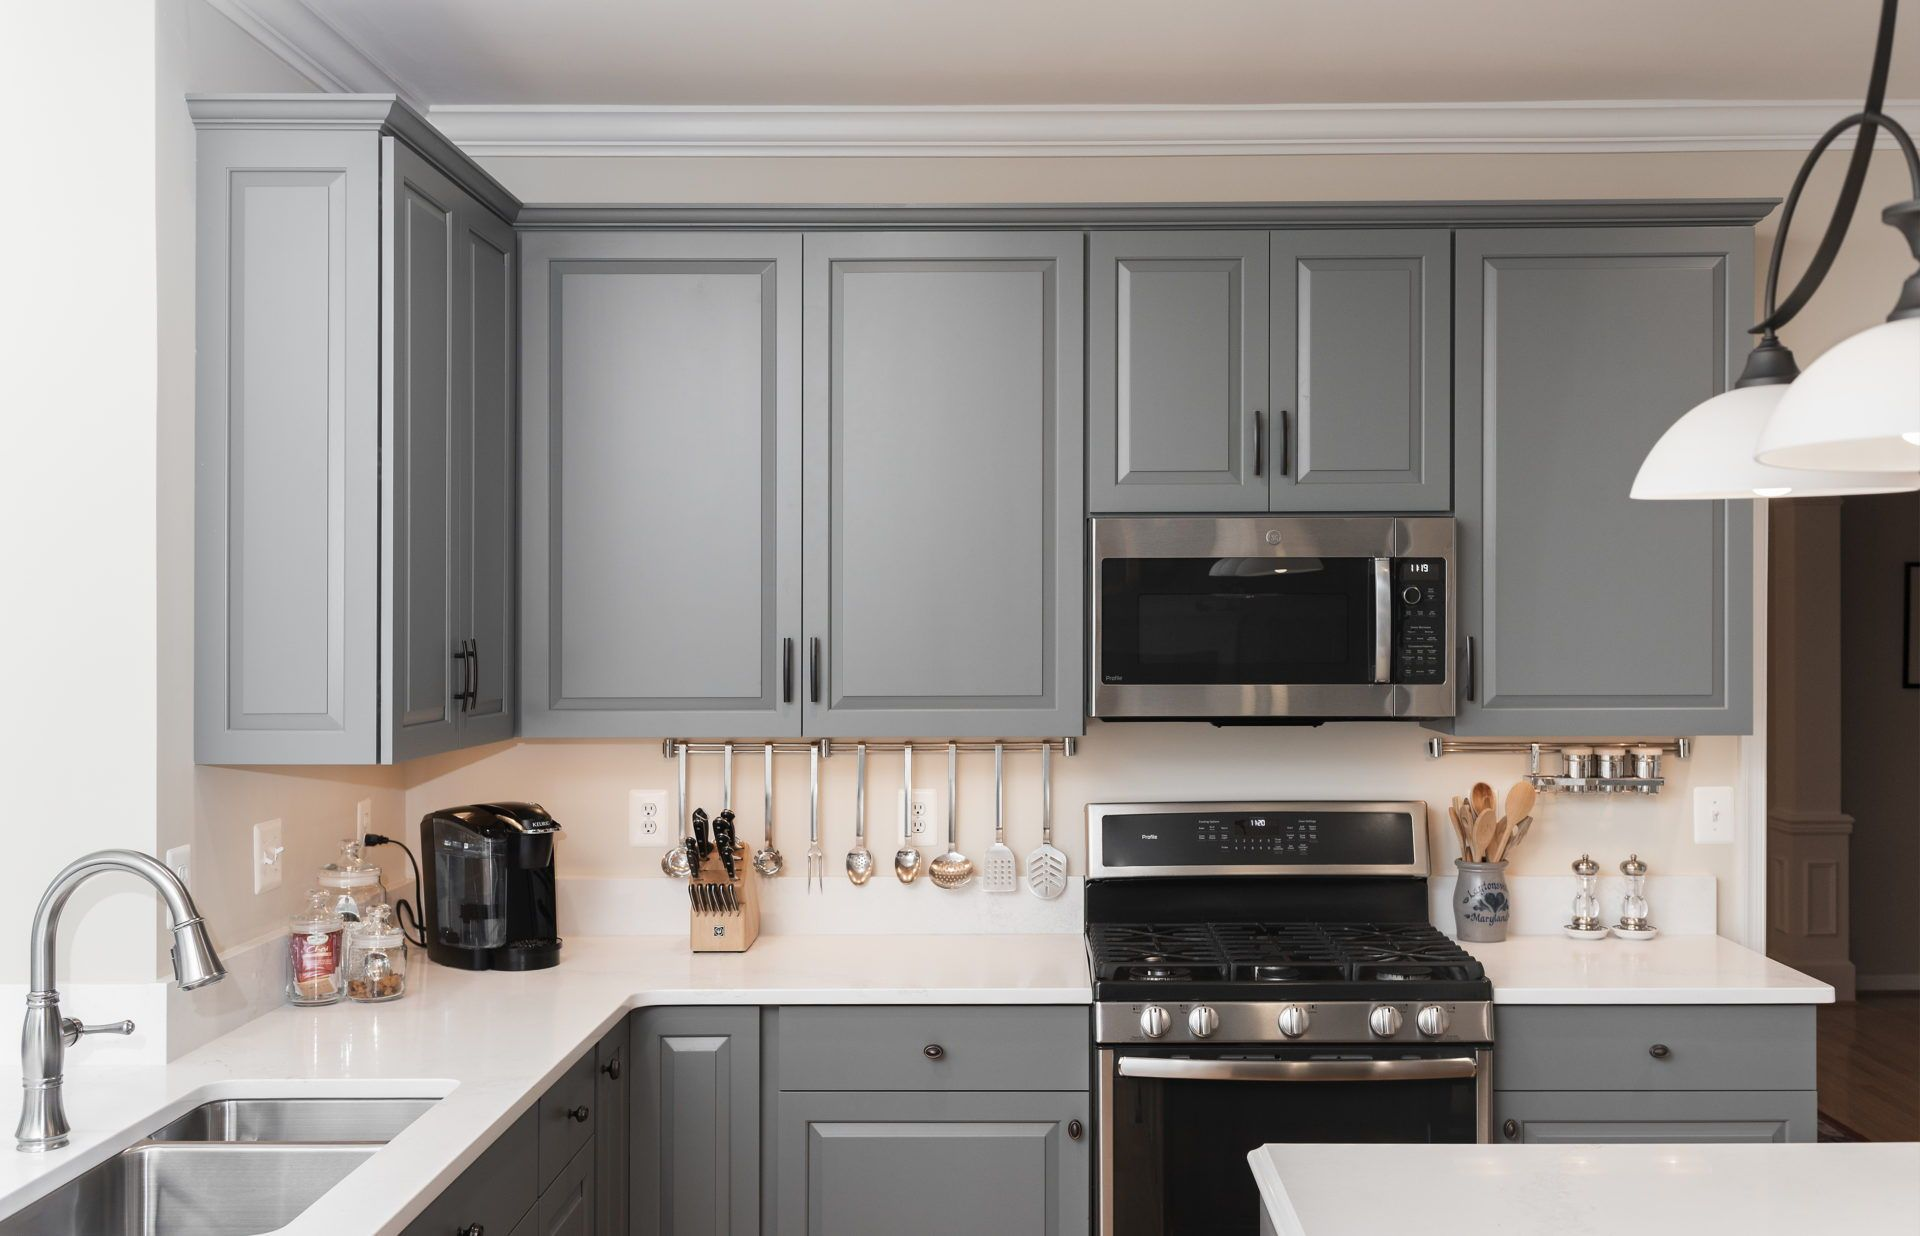 Gaithersburg Md K S Renewal Systems Llc In 2020 Cabinet Styles White Quartz Countertop Grey Kitchen Cabinets